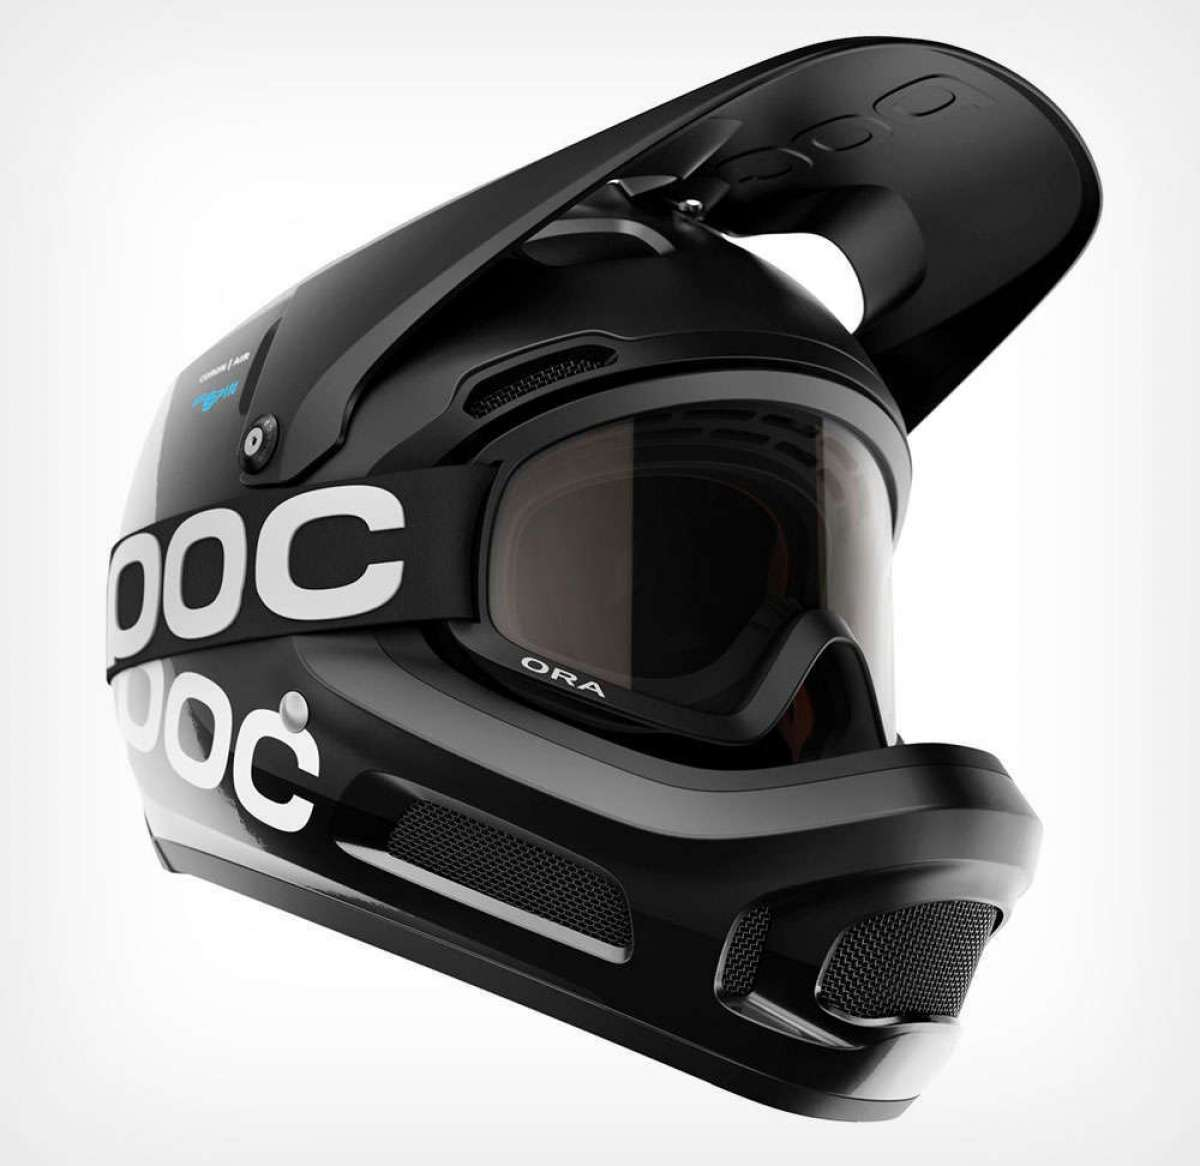 POC Coron Air Carbon Spin, un casco integral certificado para competiciones de Descenso y Enduro